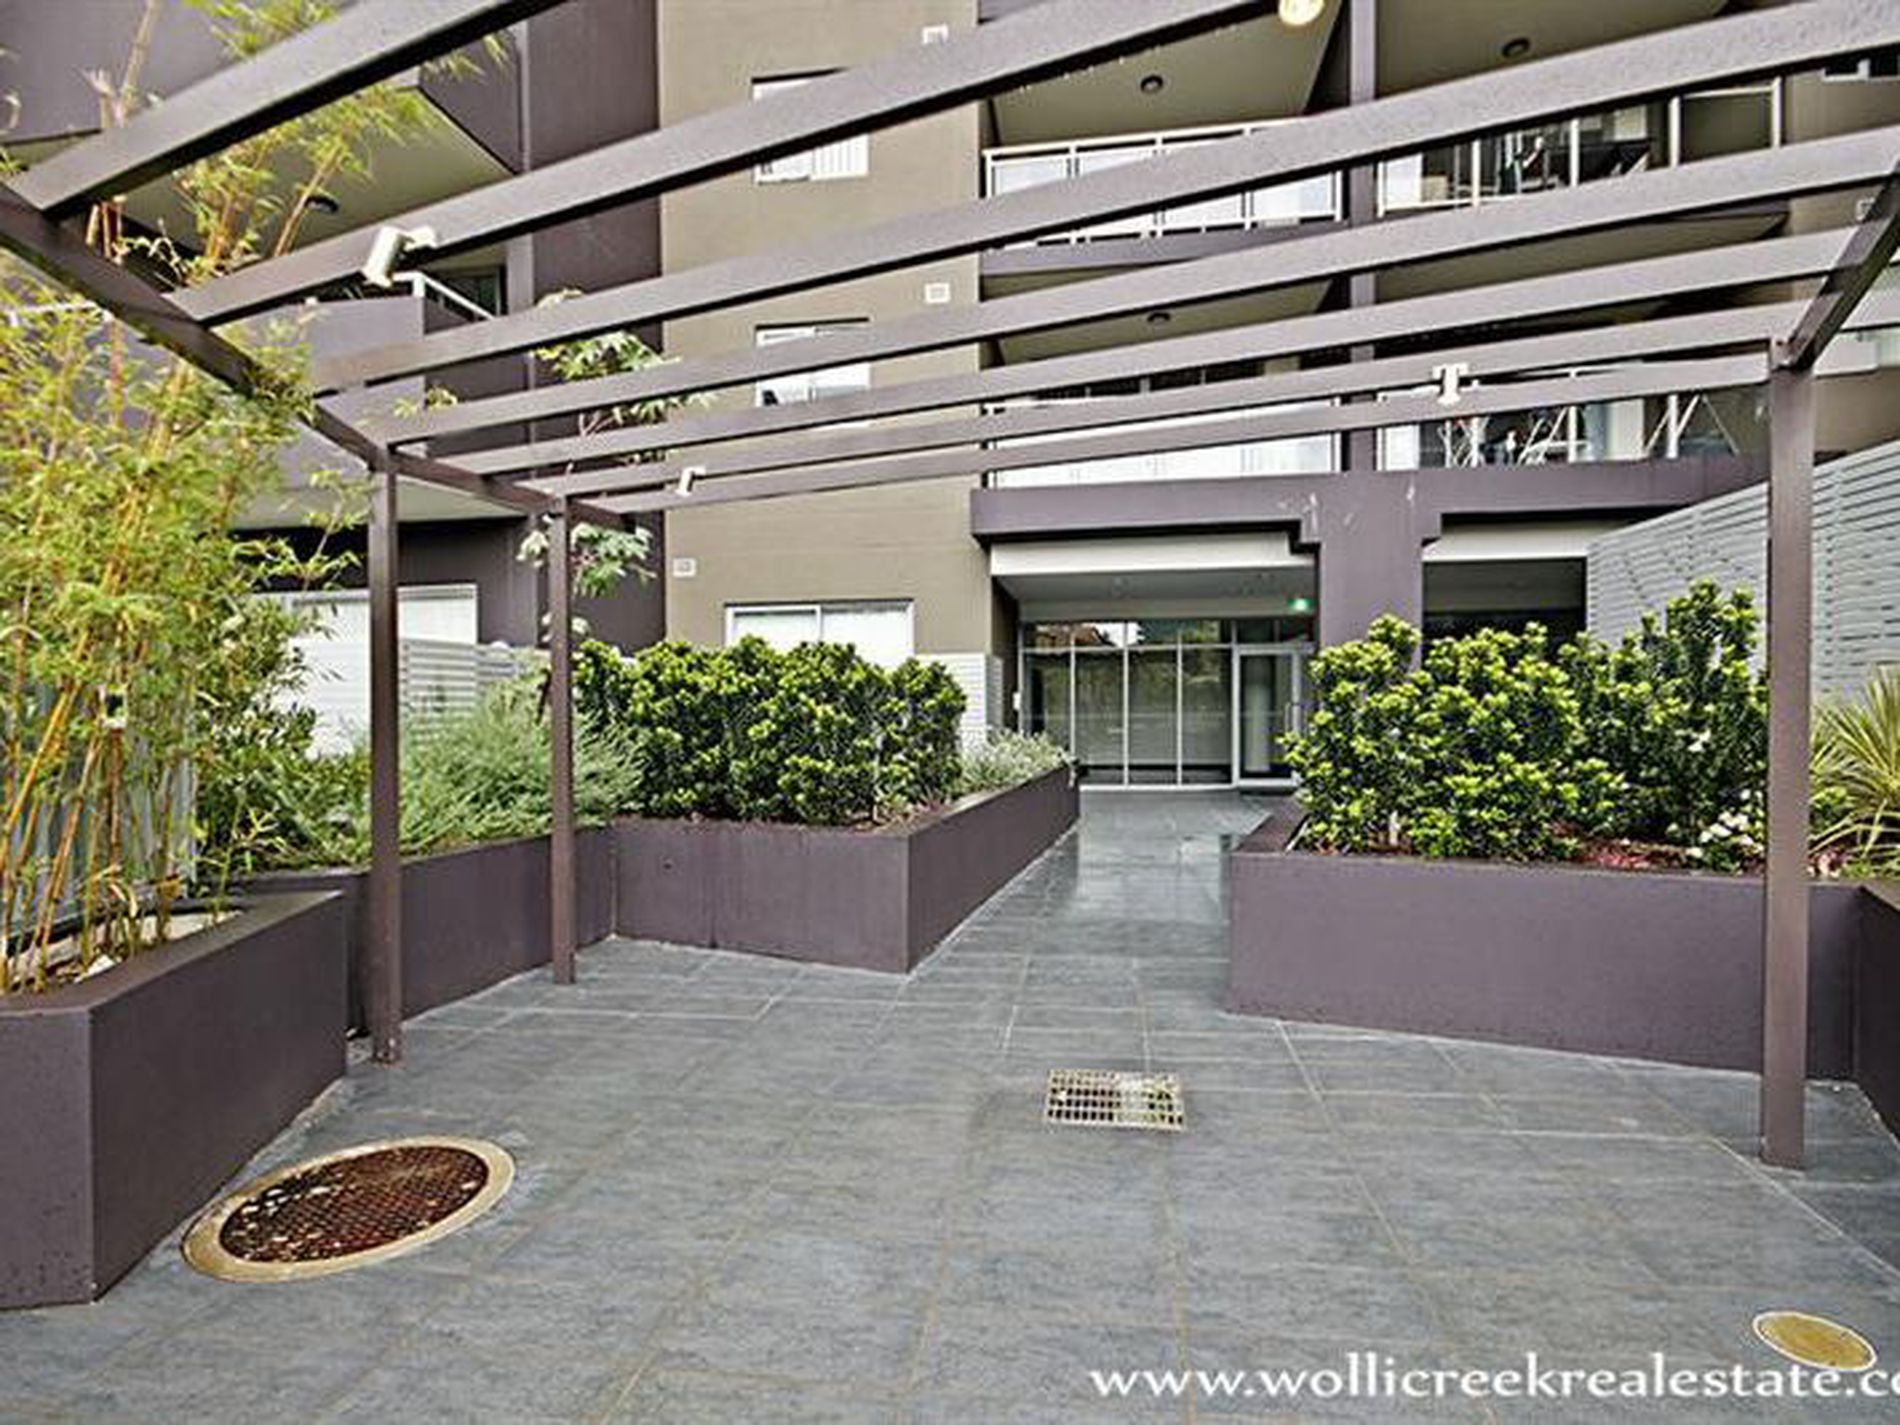 305 / 26 Marsh Street, Wolli Creek